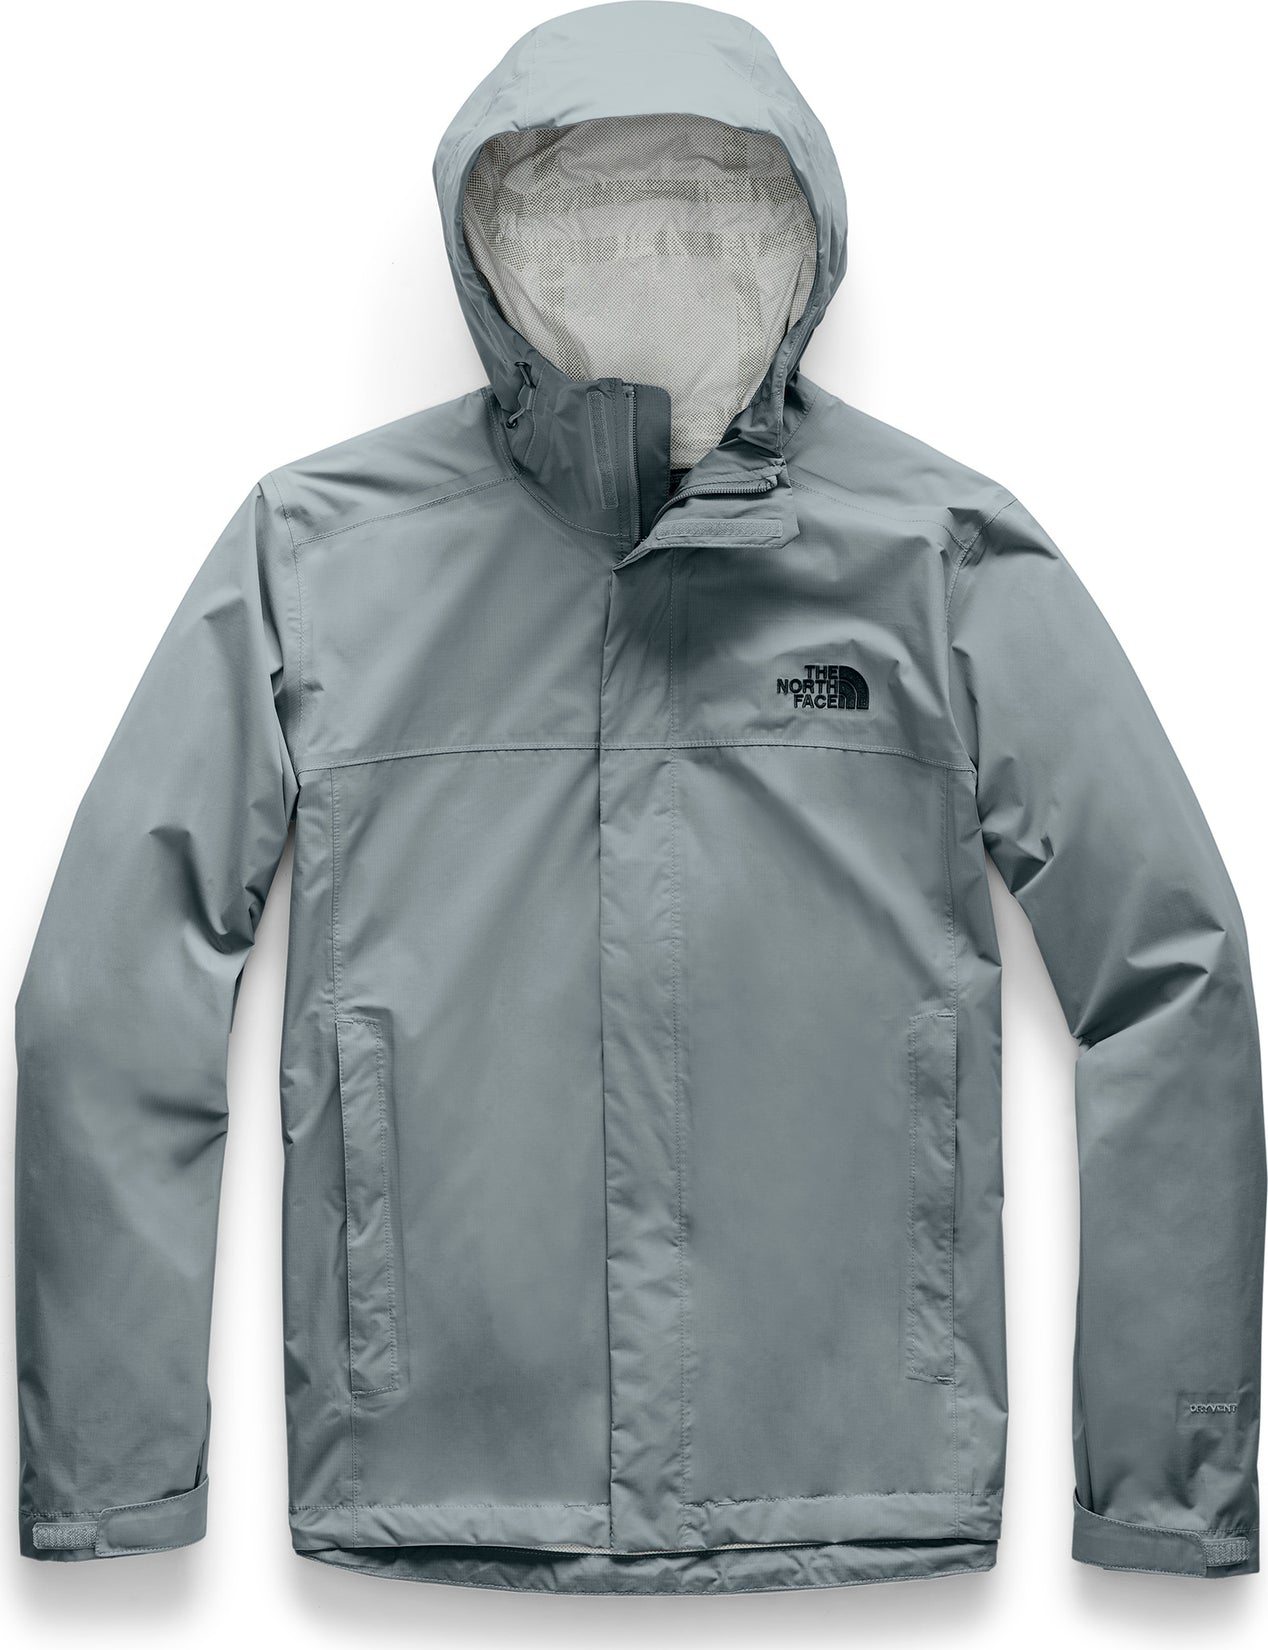 e59bf48f8 The North Face Venture 2 Jacket - Men's